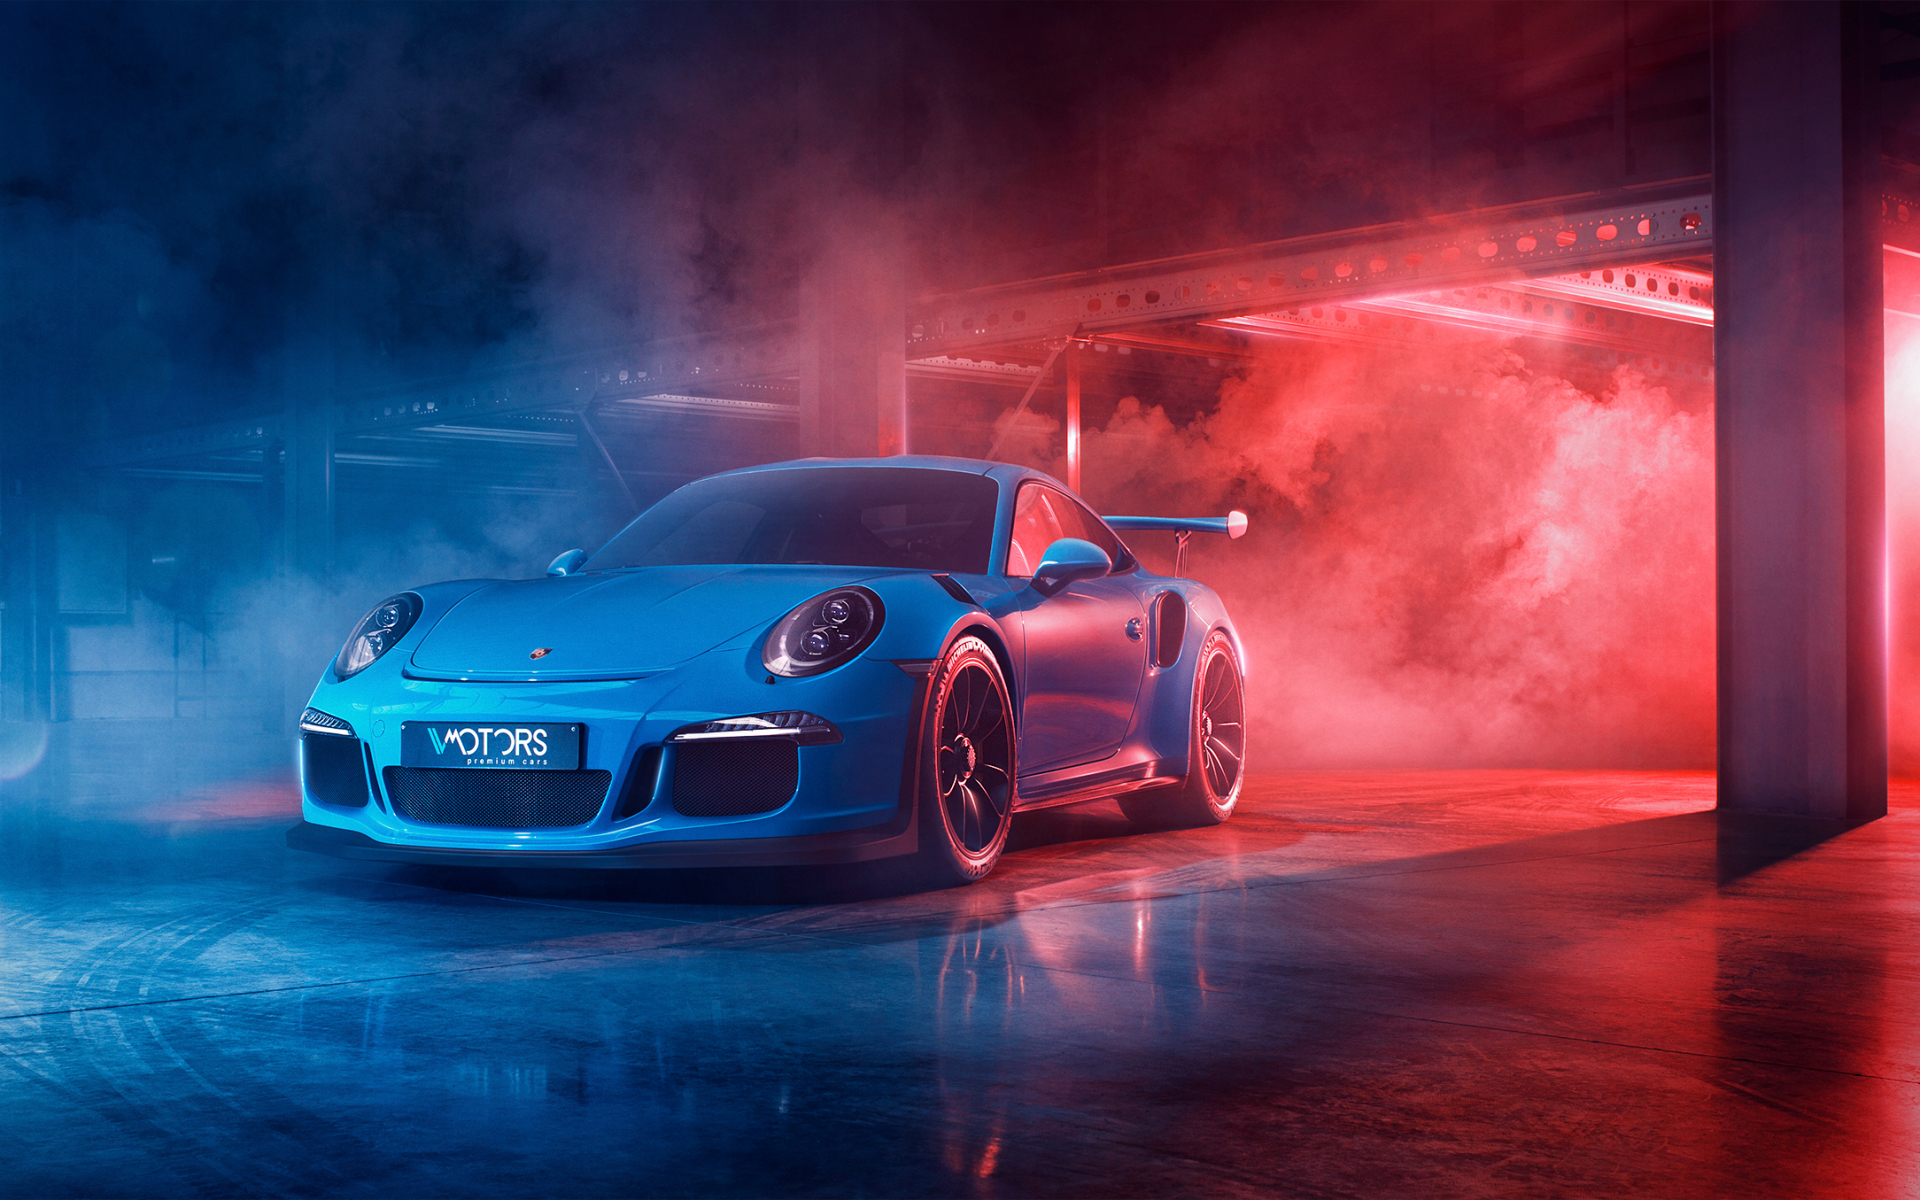 Blue Car Smoke Porsche 911 Gt3 Sport Car Wallpaper 1920x1200 Download Hd Wallpaper Wallpapertip